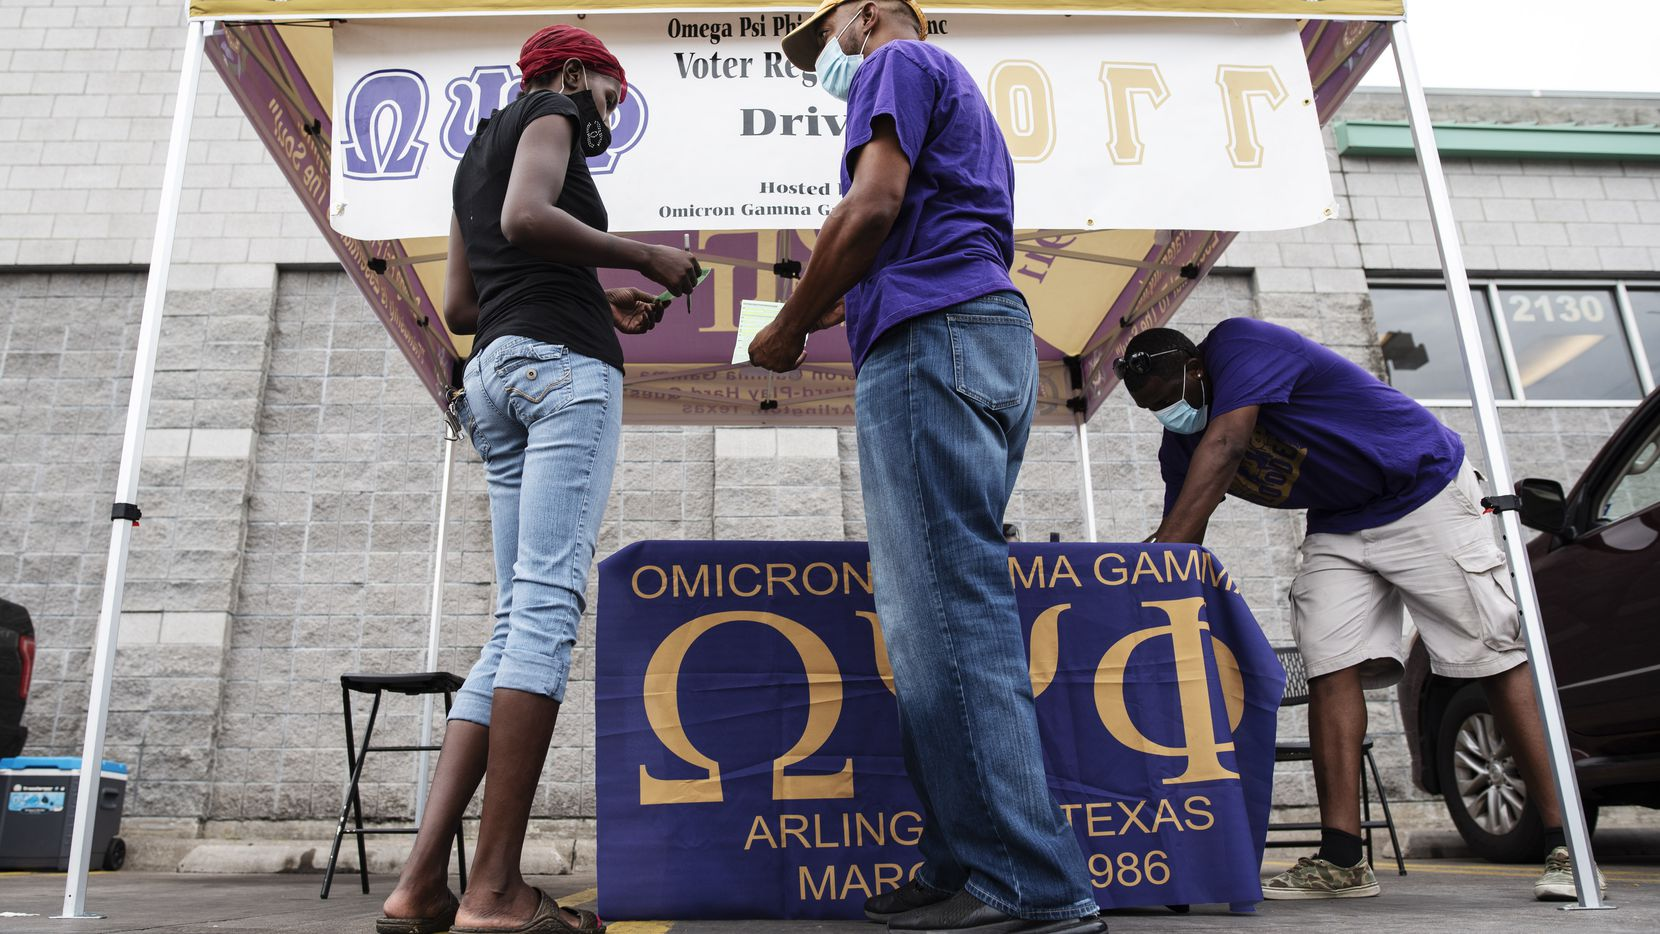 Nate Favaroth (center), a member of Omega Psi Phi Fraternity, speaks with Euniqua Marshall, 33, as she updates her voter registration information during a voter registration drive outside of the Cash Saver grocery store in South Dallas on Sept. 5, 2020. Omega Psi Phi Fraternity, part of the National Pan-Hellenic Council, conducted the registration drive.